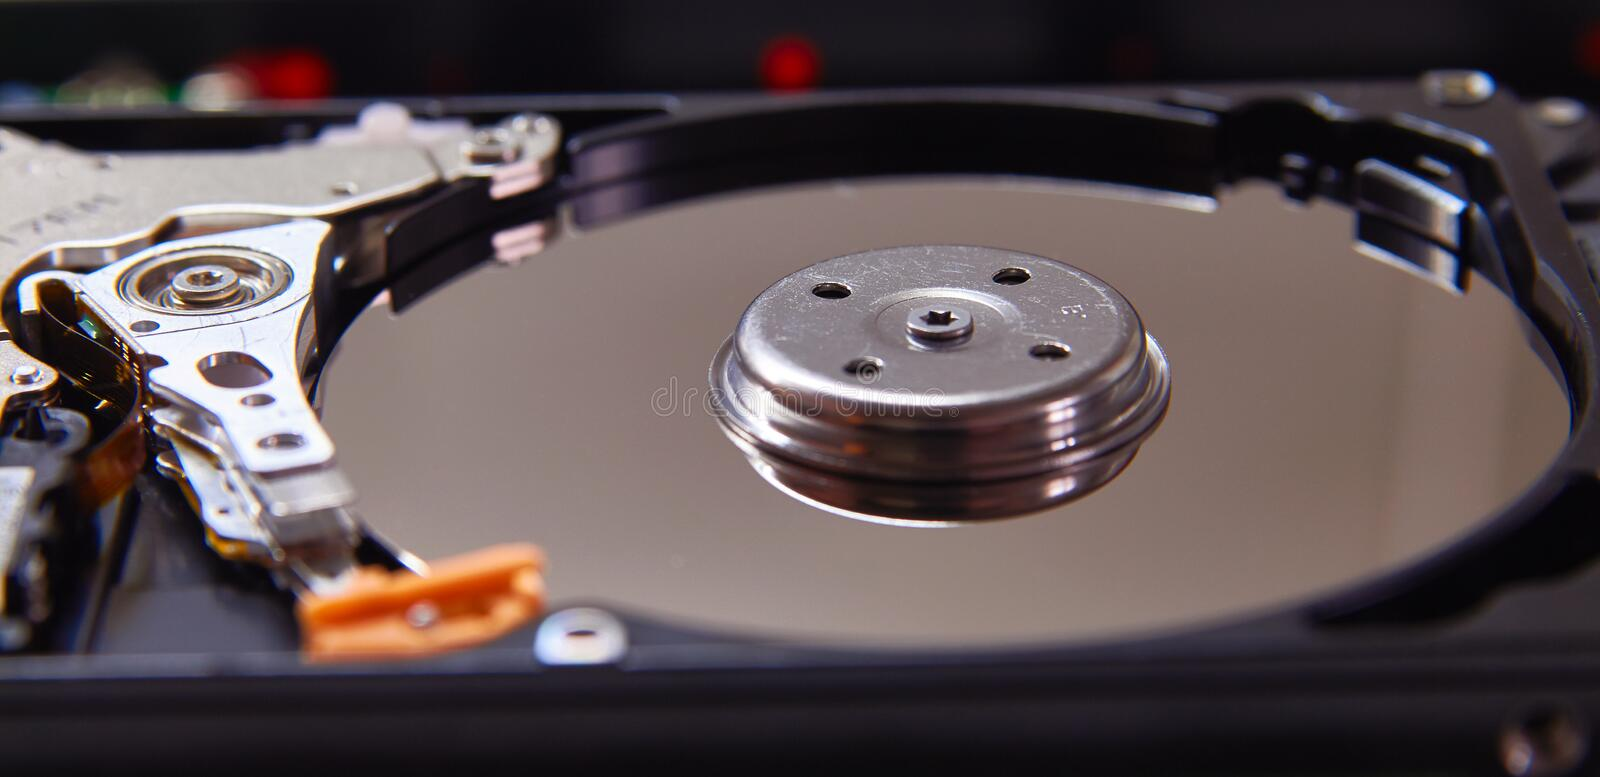 Disassembled hard drive from the computer. Part of pc, laptop stock photo